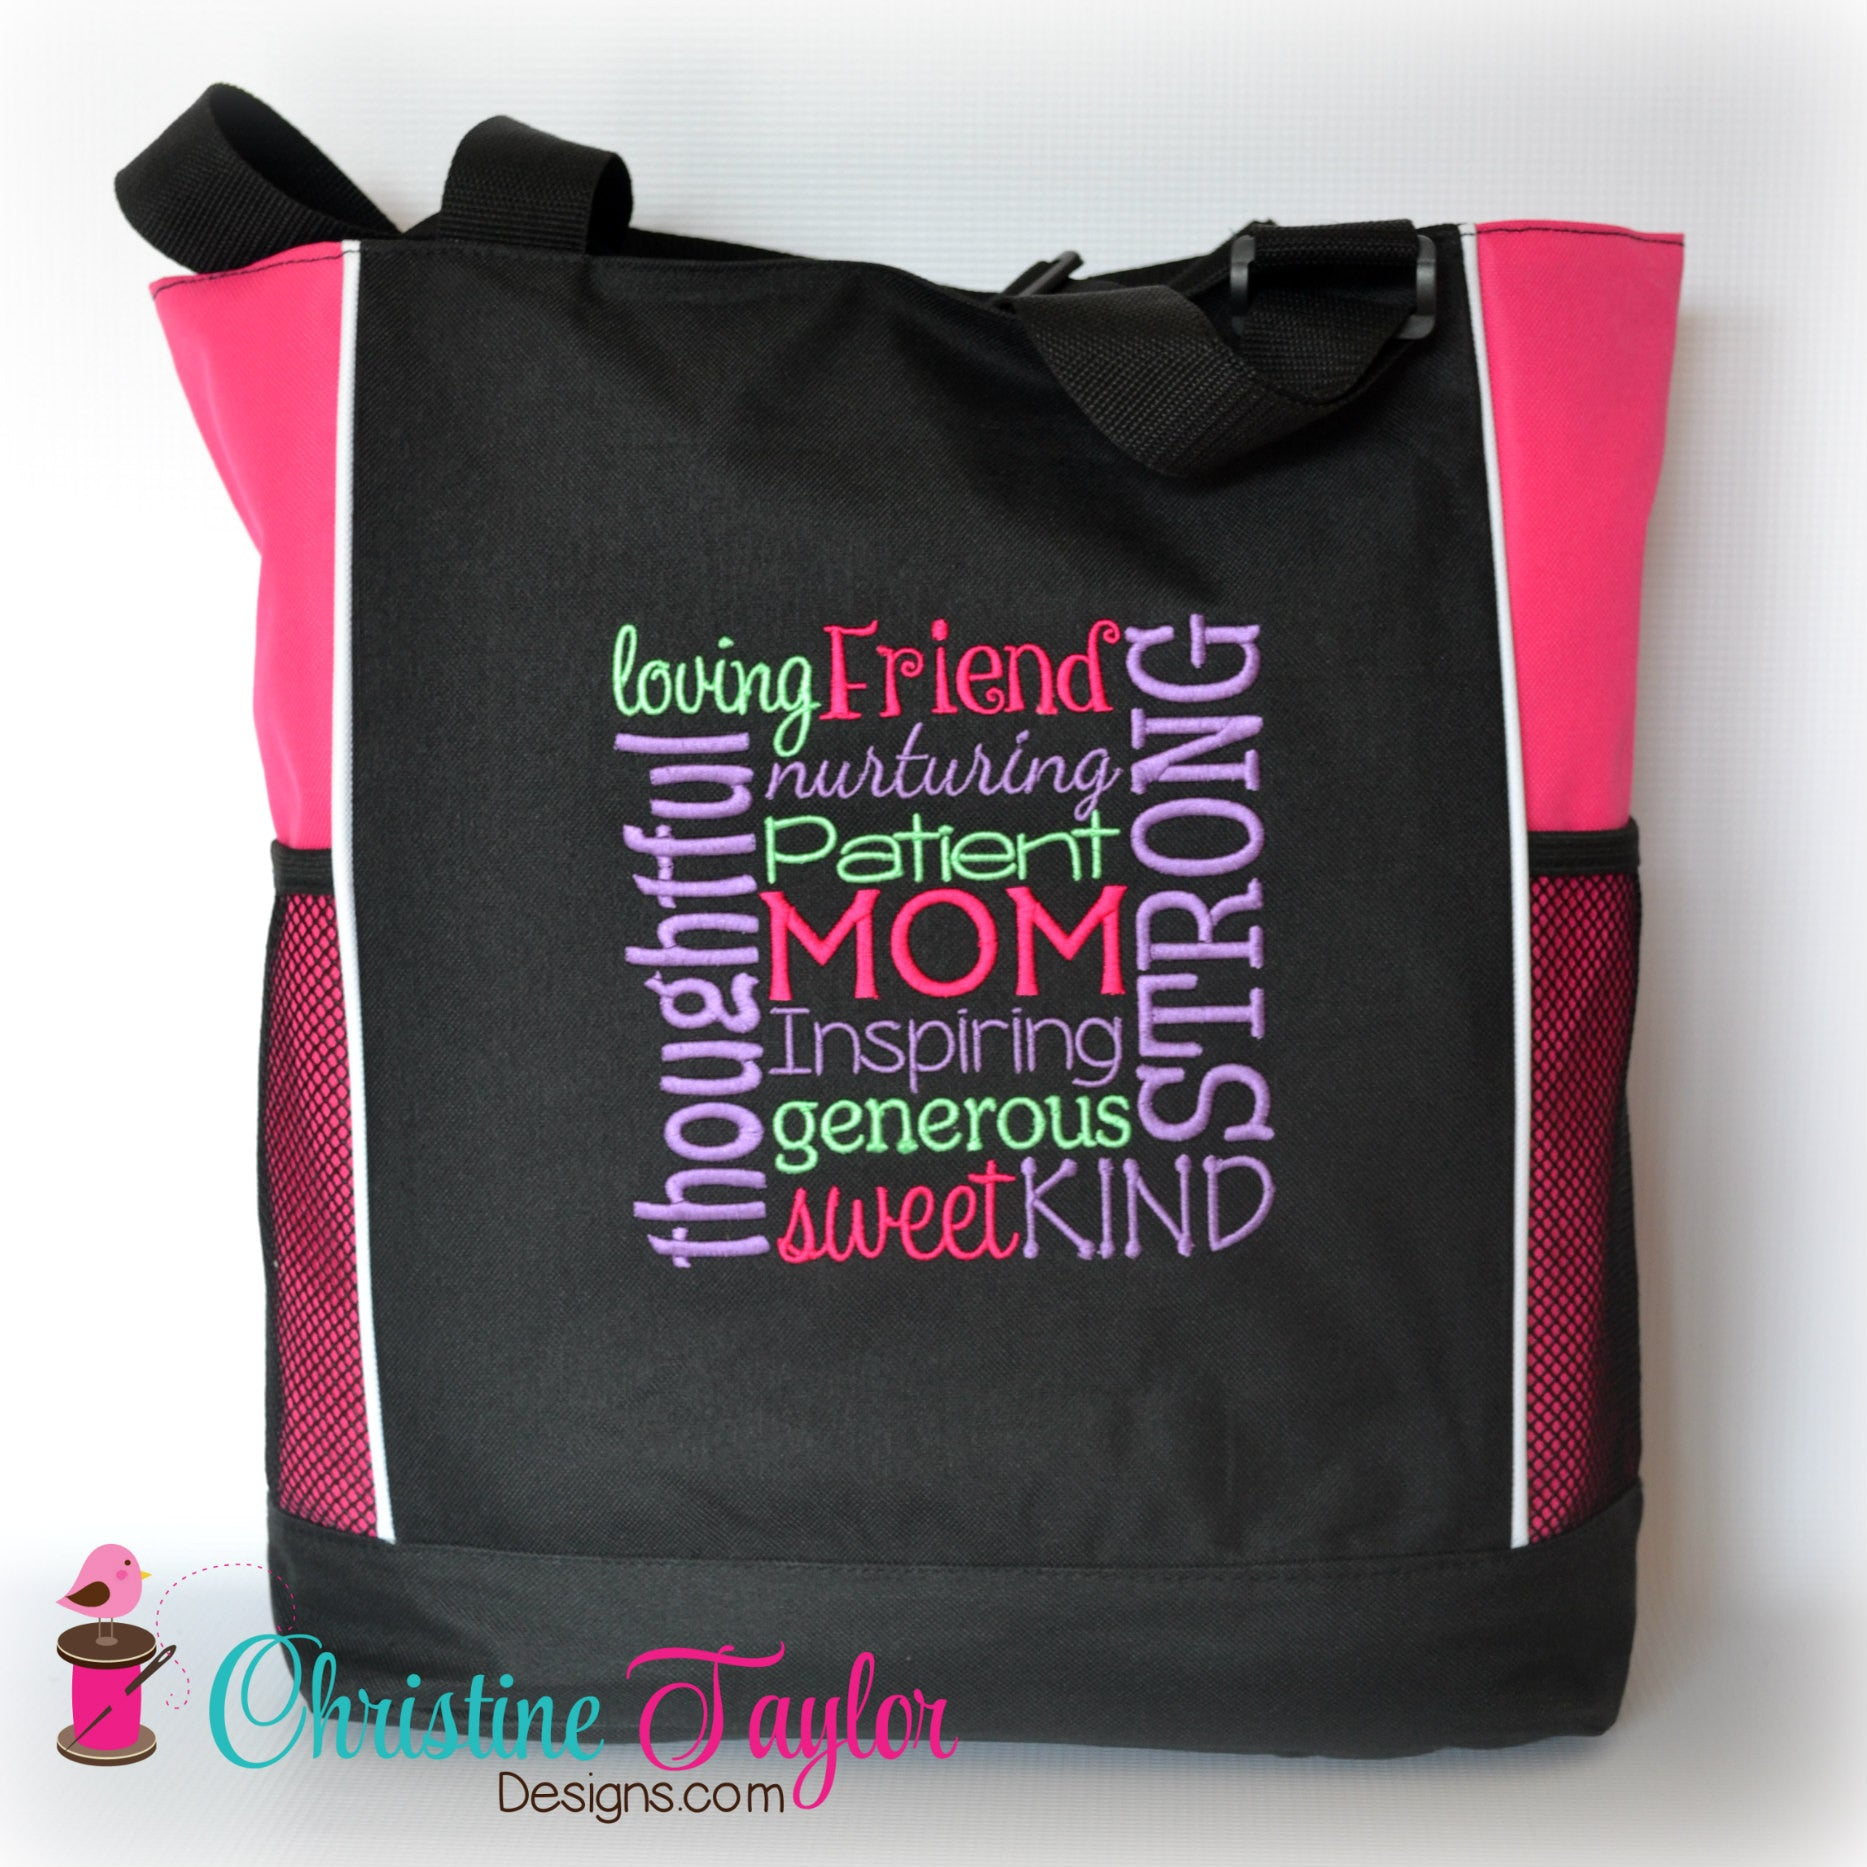 Mom themed Tote Bag with zipper - Christine Taylor Designs